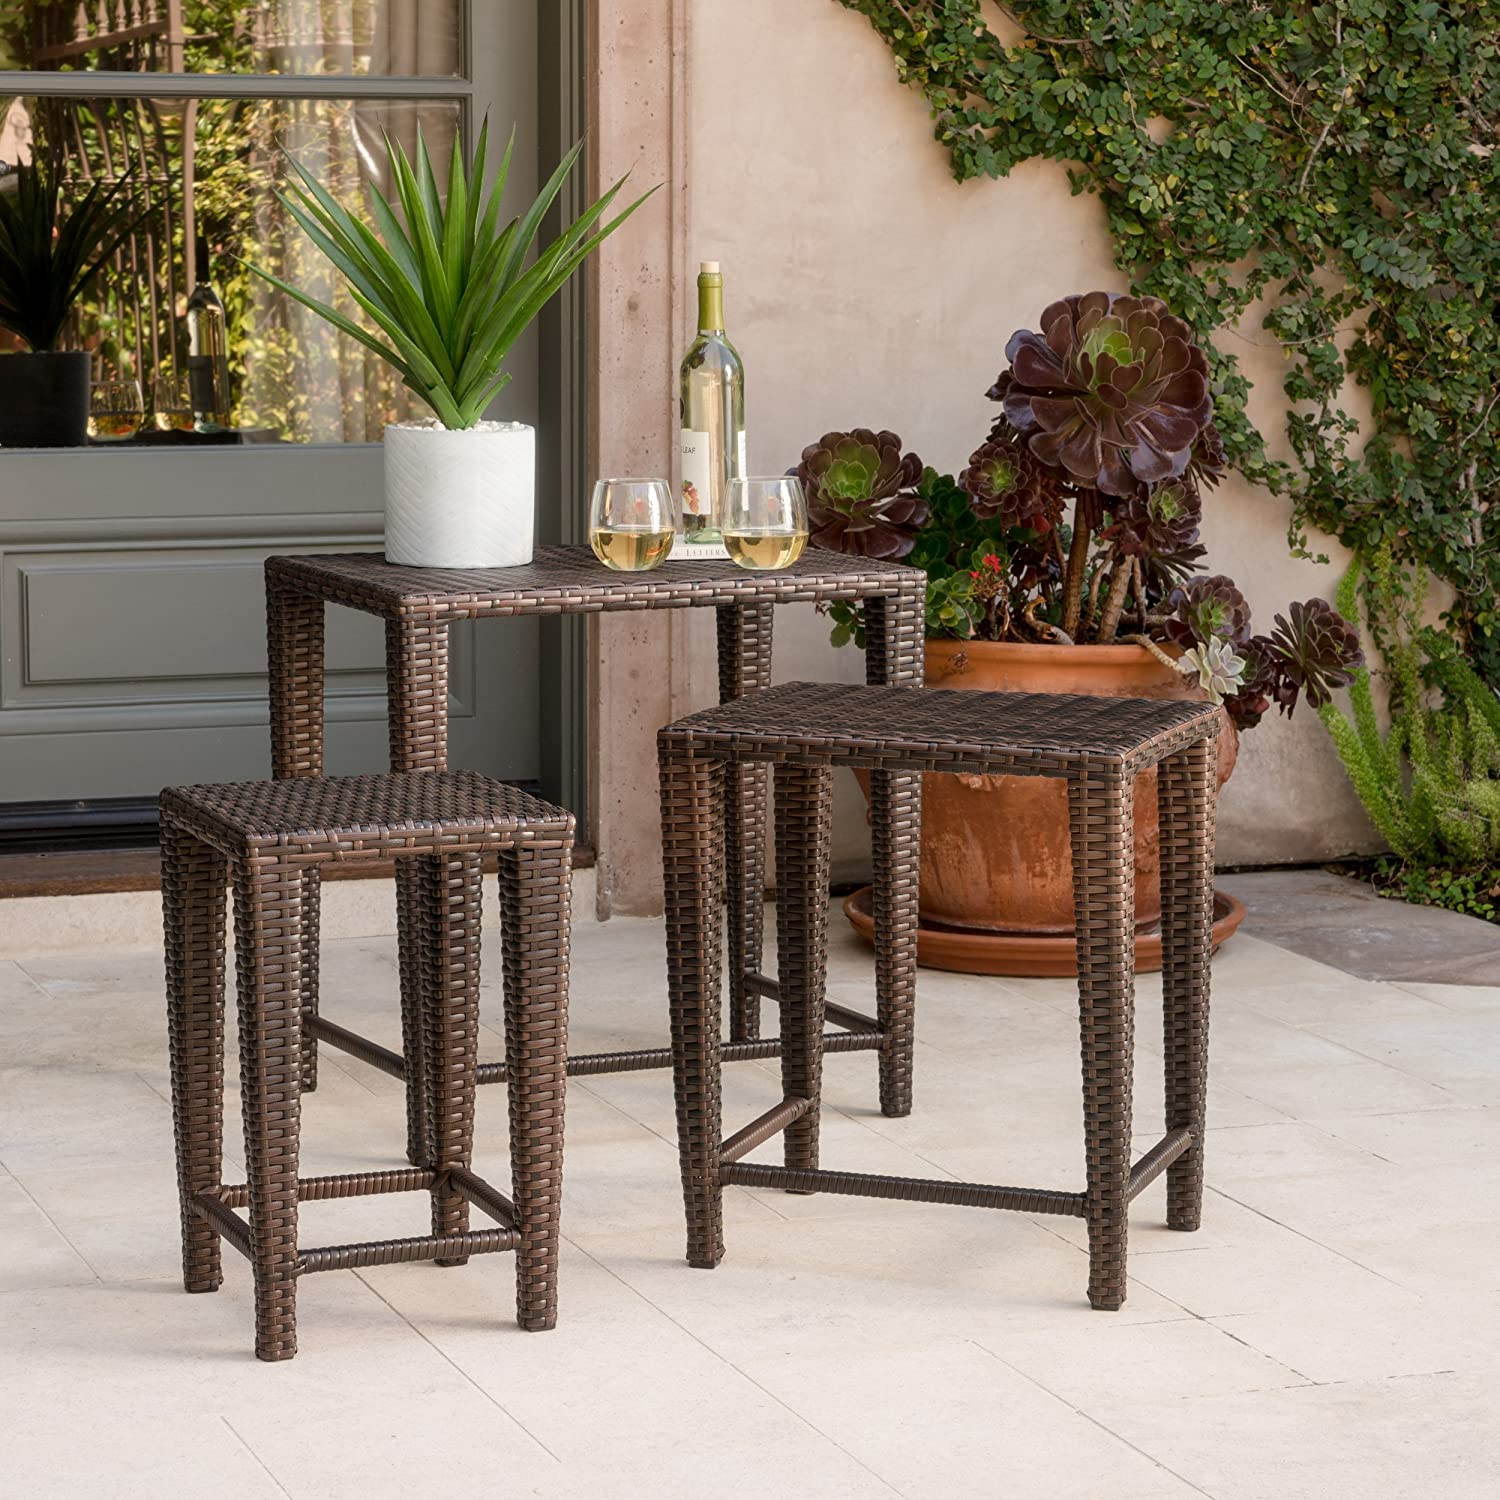 Mayall Patio Furniture 3 Piece Brown Nested Outdoor Wicker Side Table Set